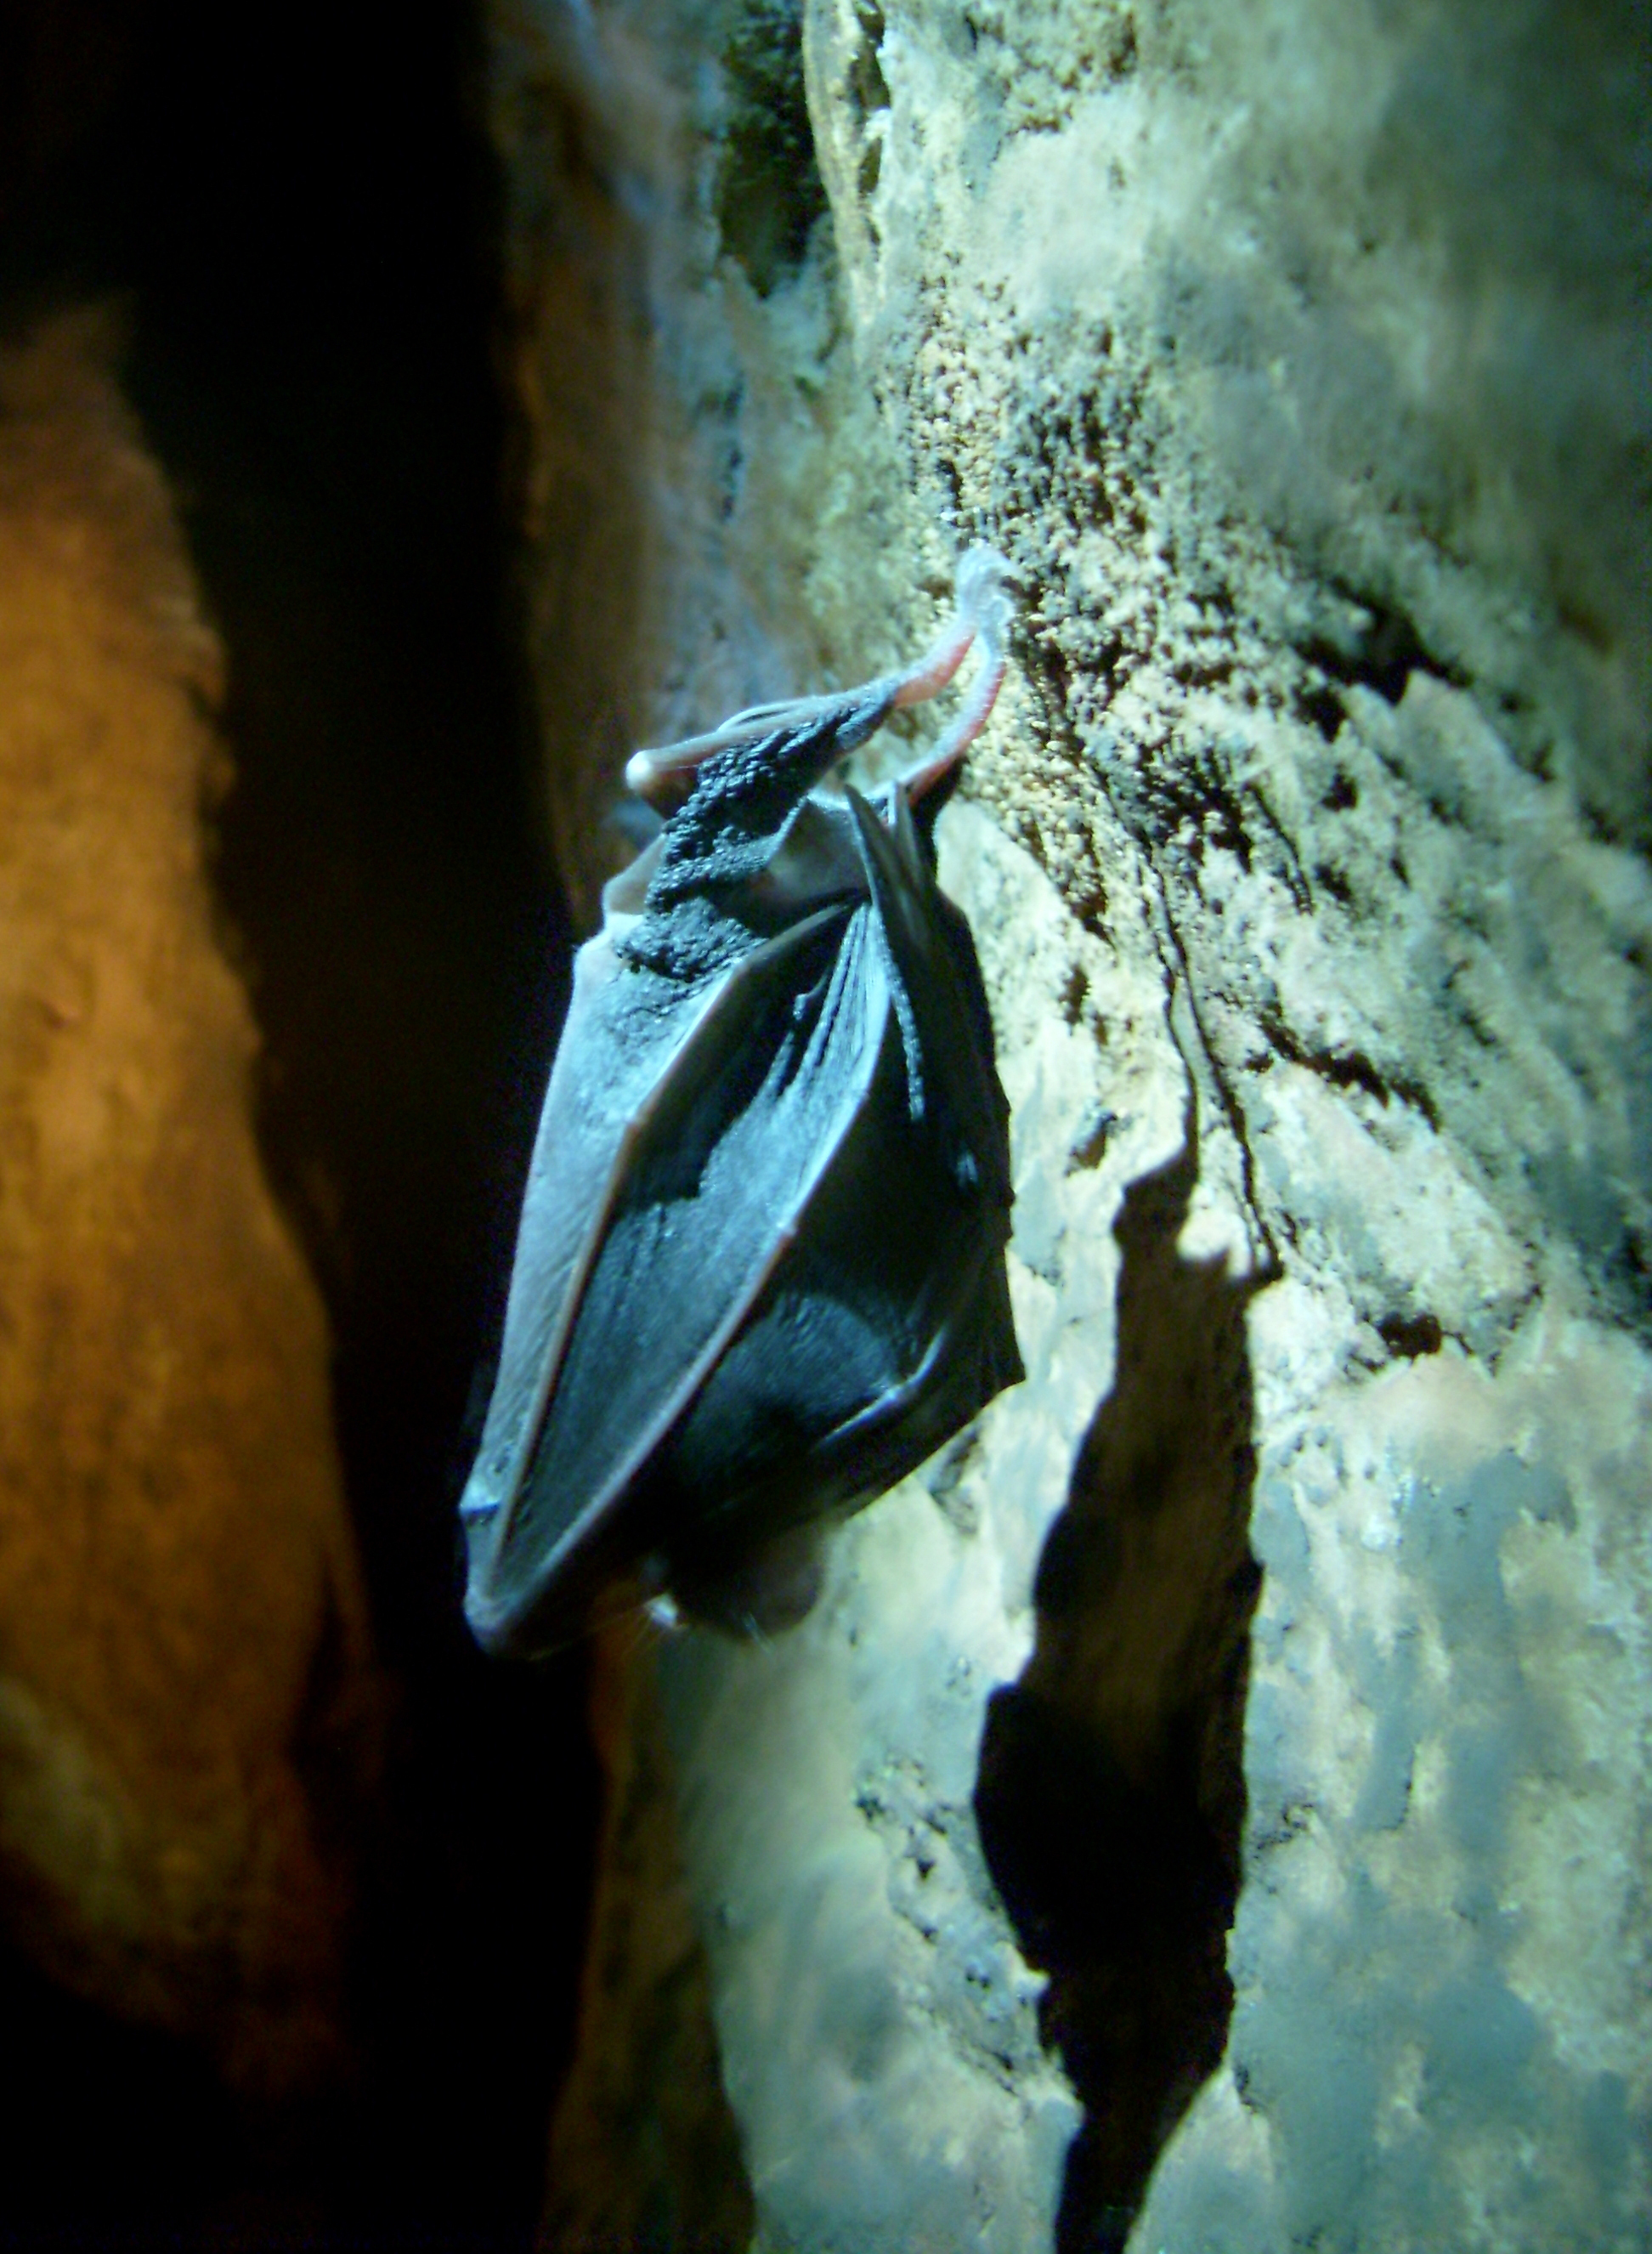 Bats survive the winter in the cave